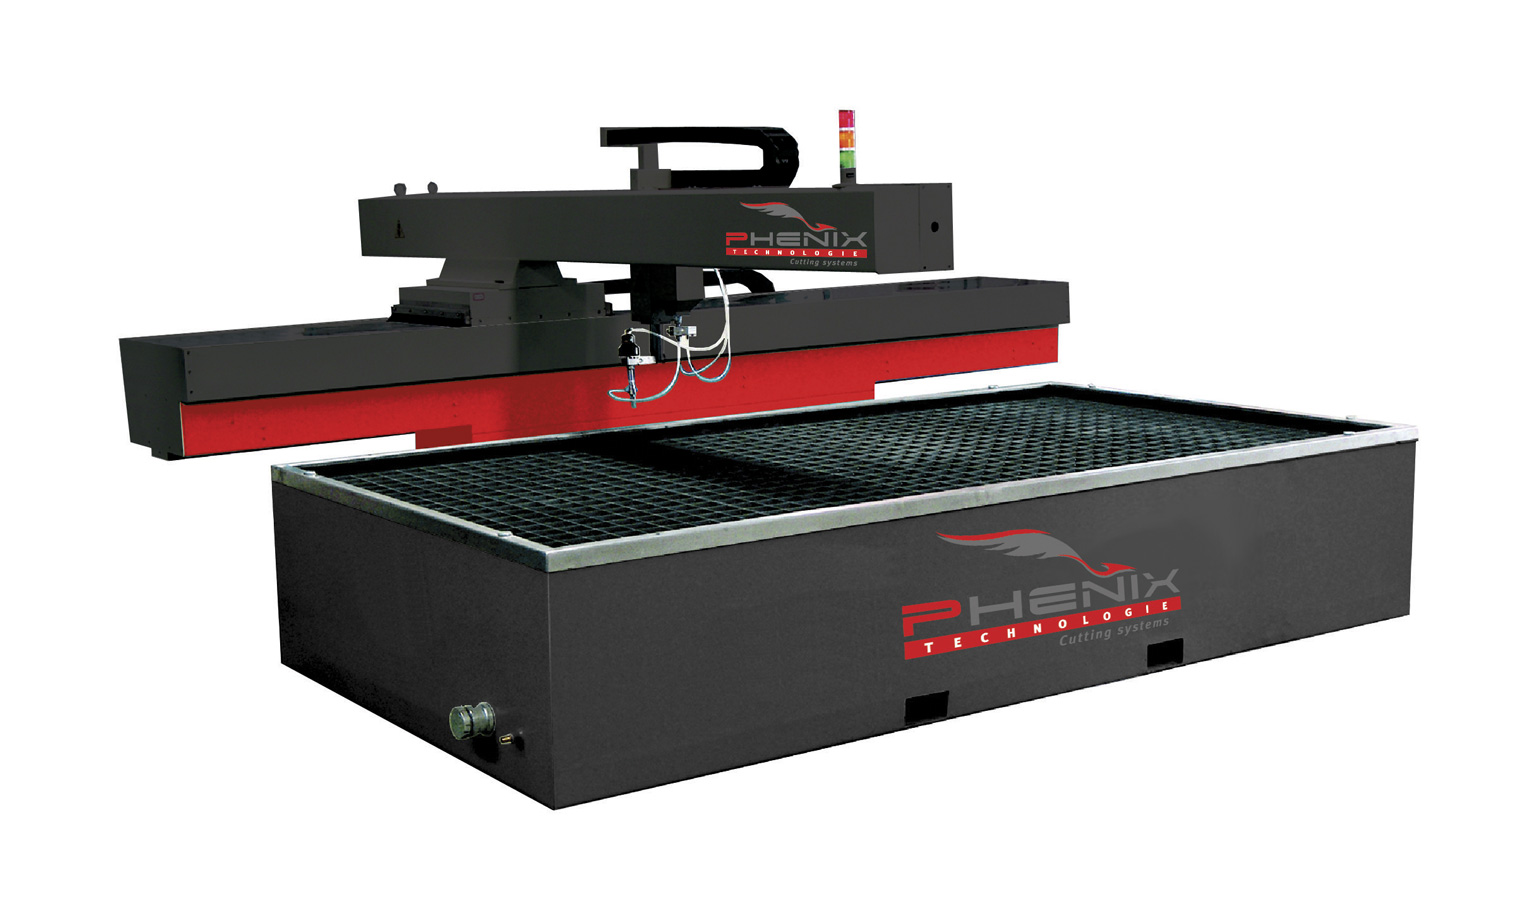 MD JET - MD Jet waterjet cutting machine